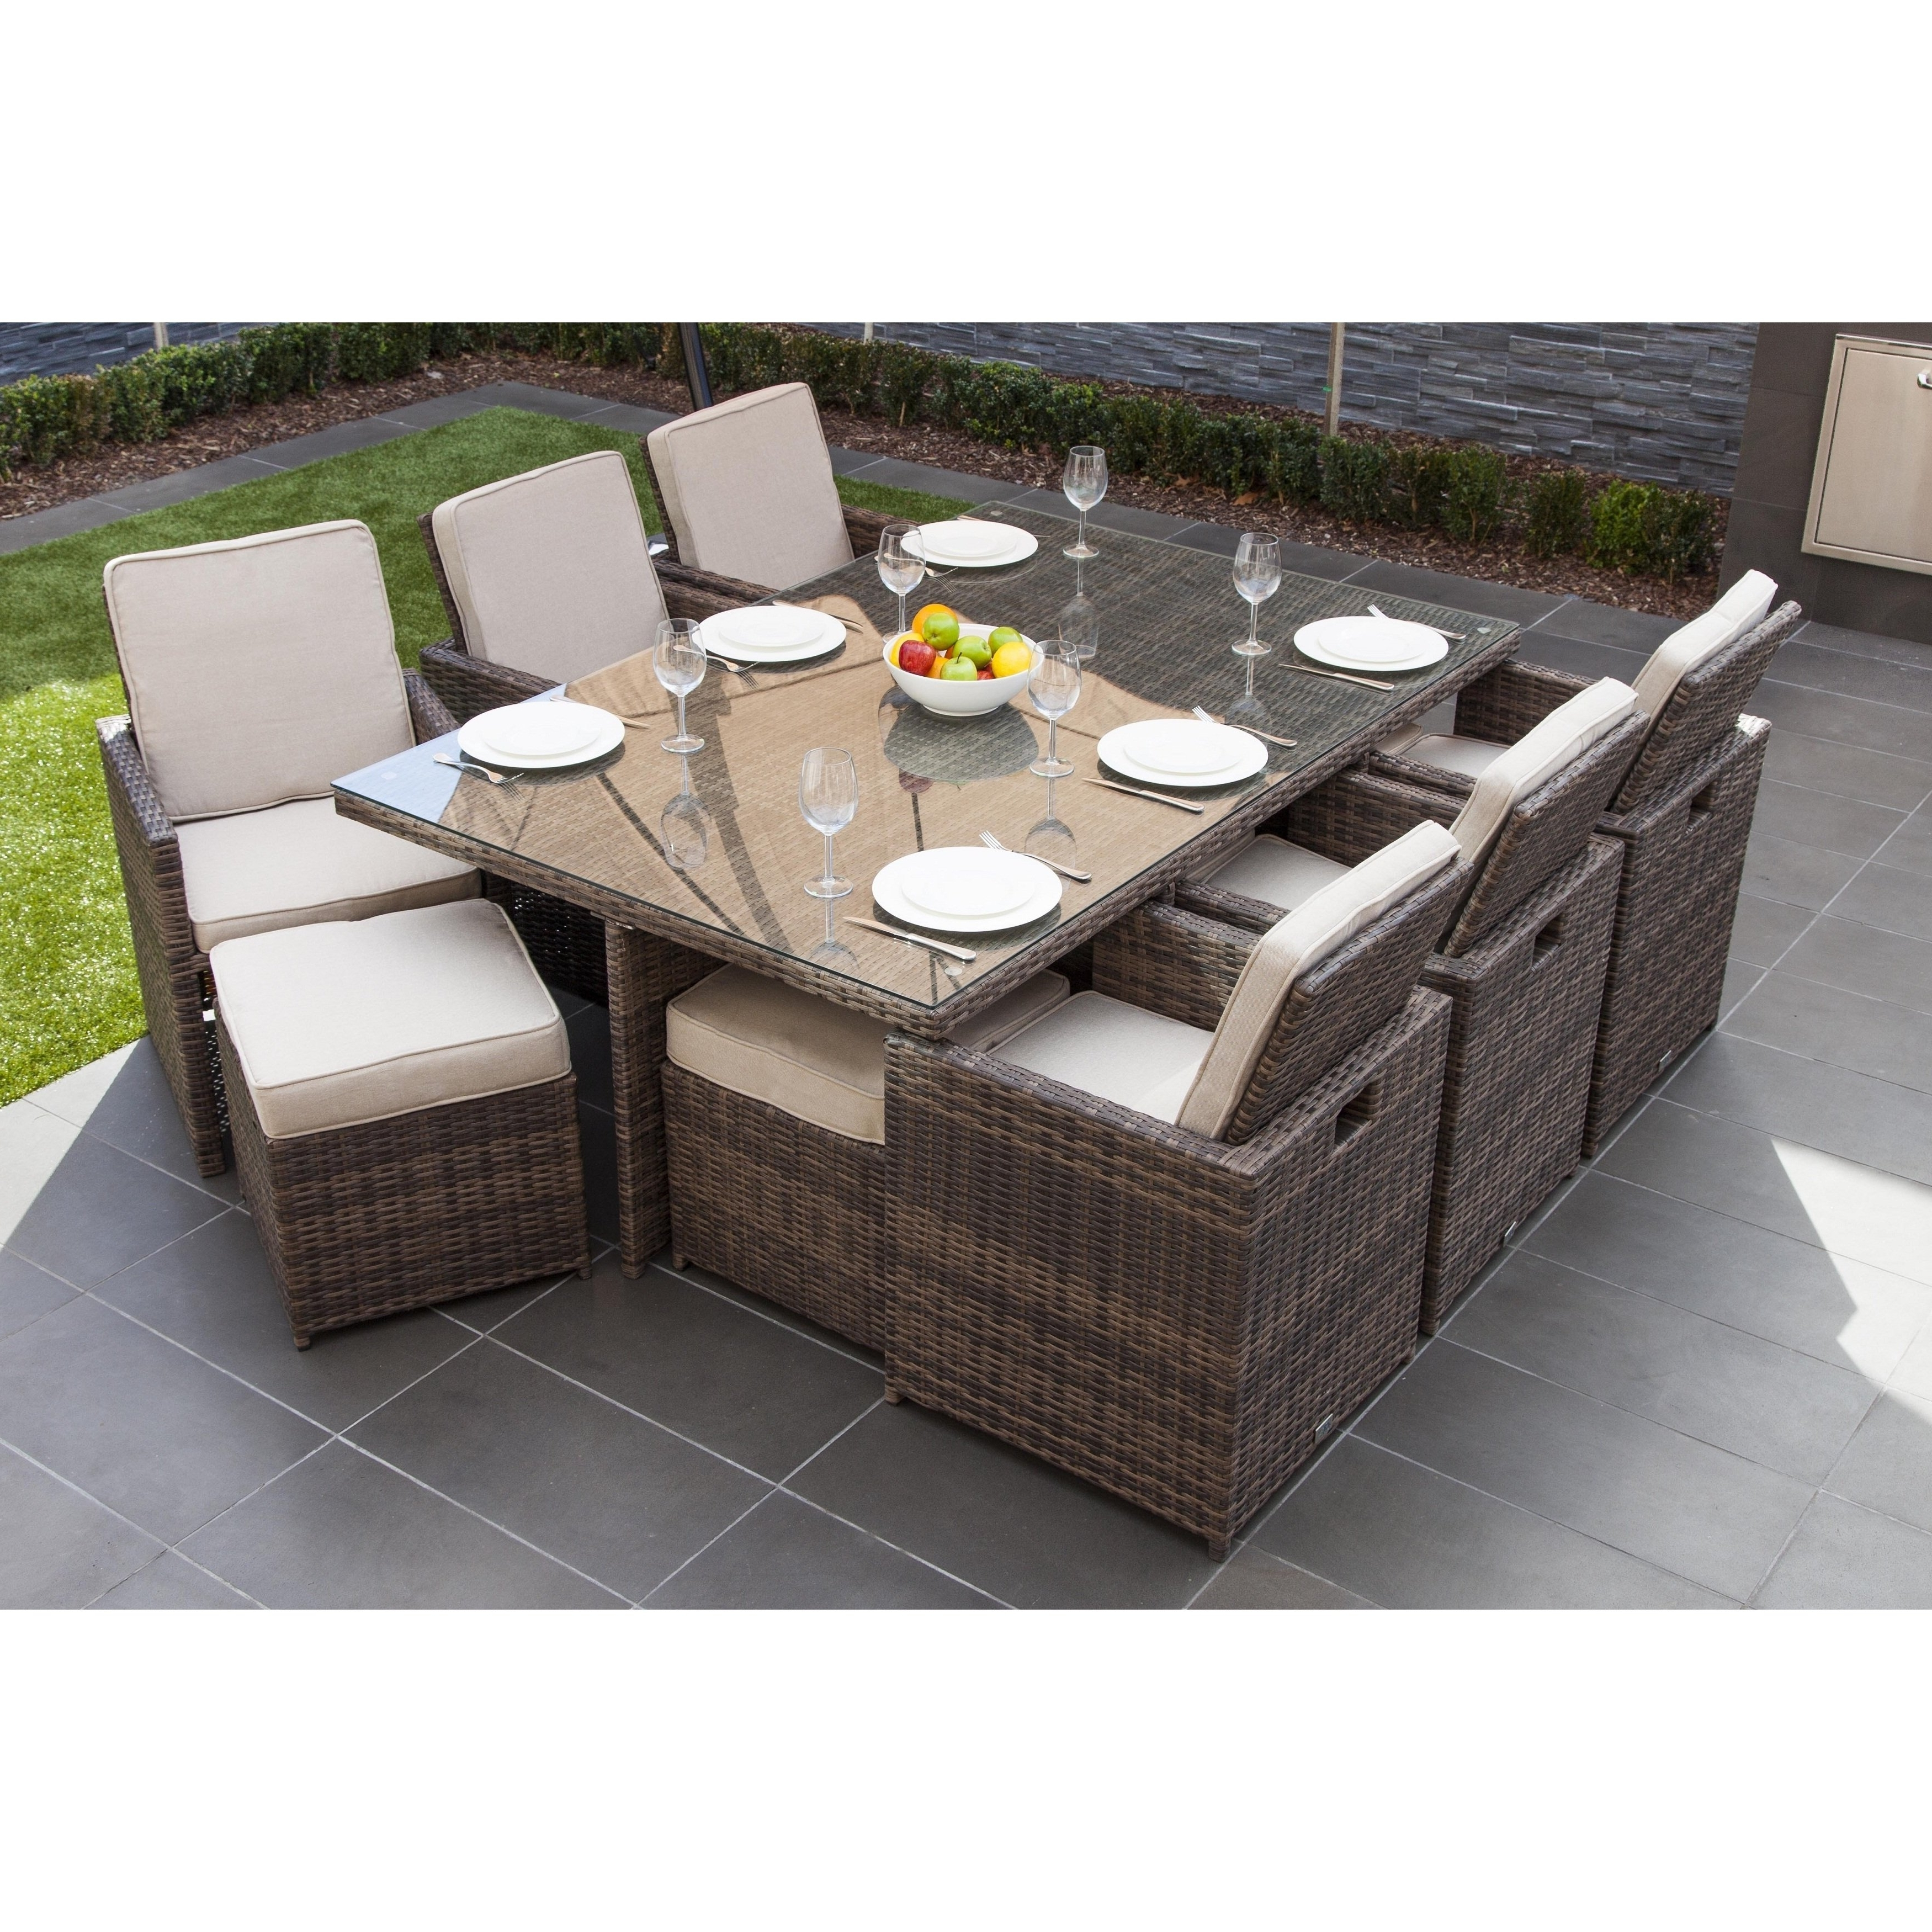 Shop Malta 11 Piece Outdoor Wicker Dining Table And Cushion Set Throughout Best And Newest Rattan Dining Tables And Chairs (View 22 of 25)